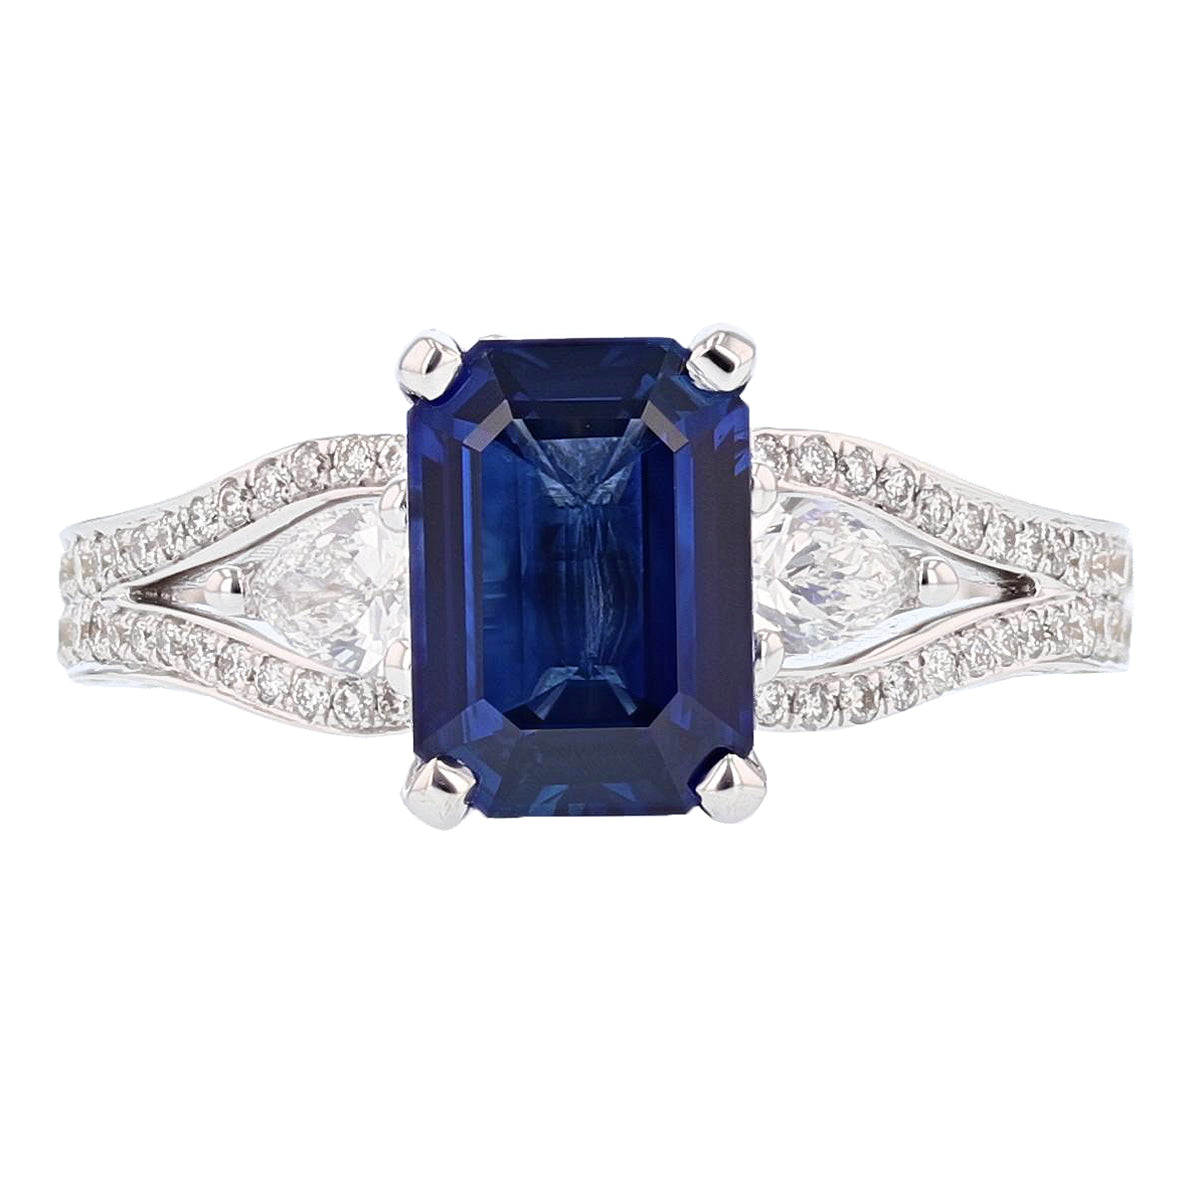 18K White Gold 2.20 Carat Emerald Cut Sapphire and Diamond Ring - Nazarelle